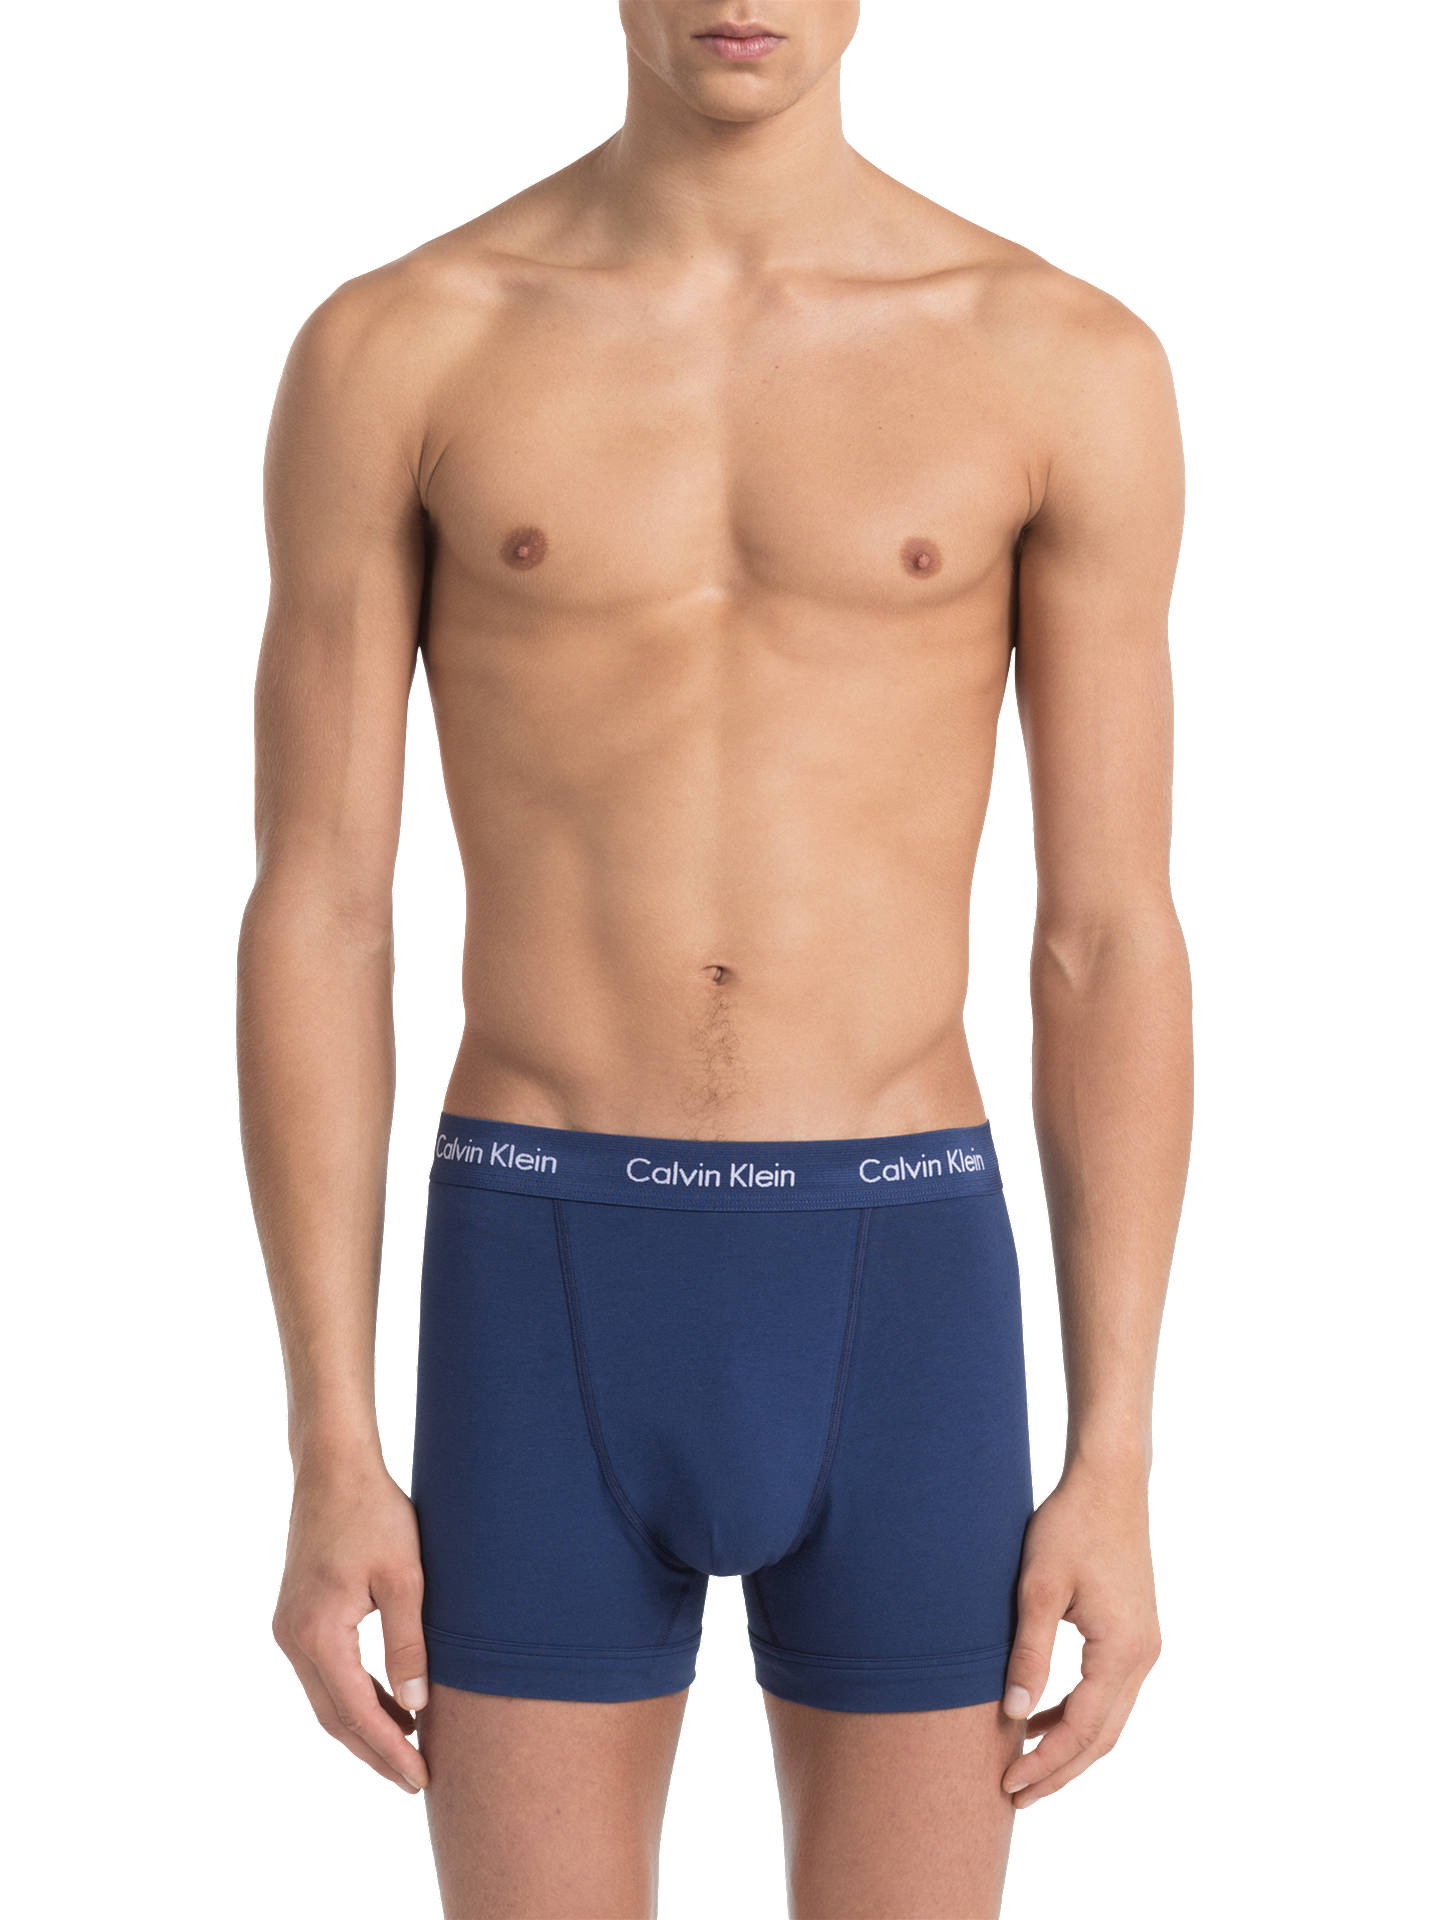 Buy Calvin Klein Cotton Stretch Trunks, Pack of 3, Aqua/Orange/Blue, S Online at johnlewis.com